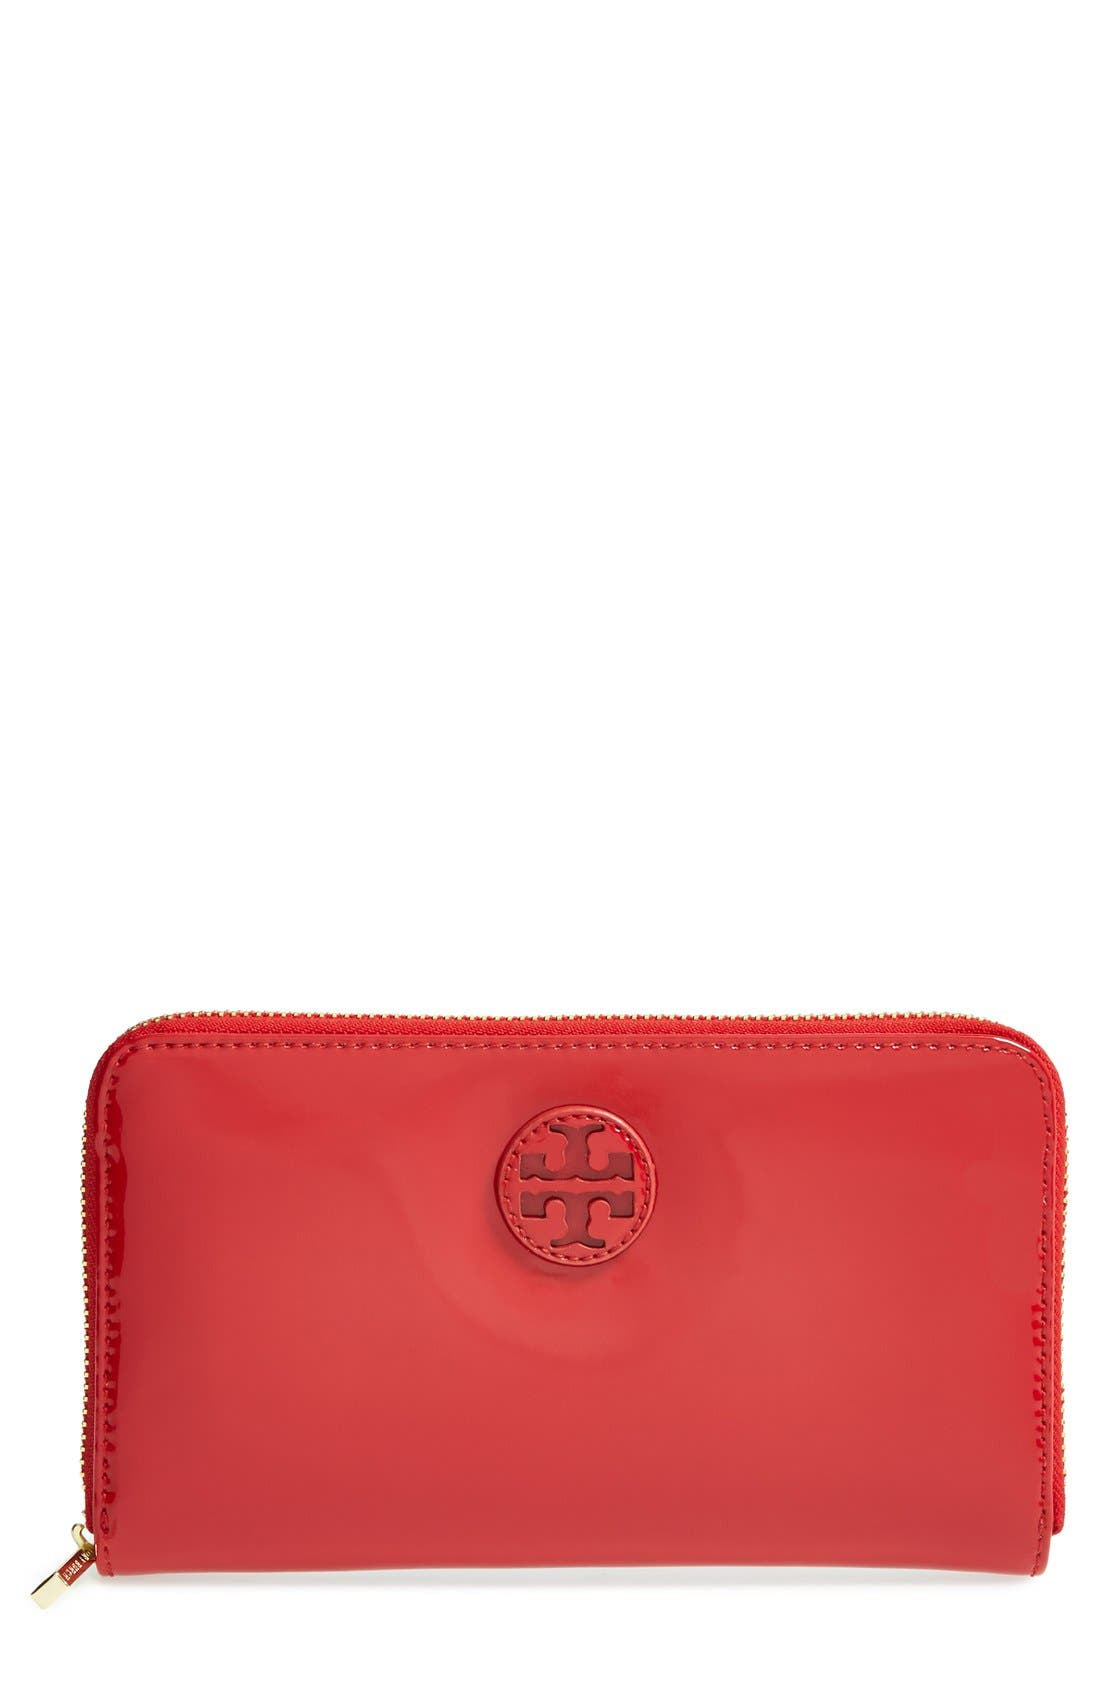 Main Image - Tory Burch Patent Leather Zip Around Wallet